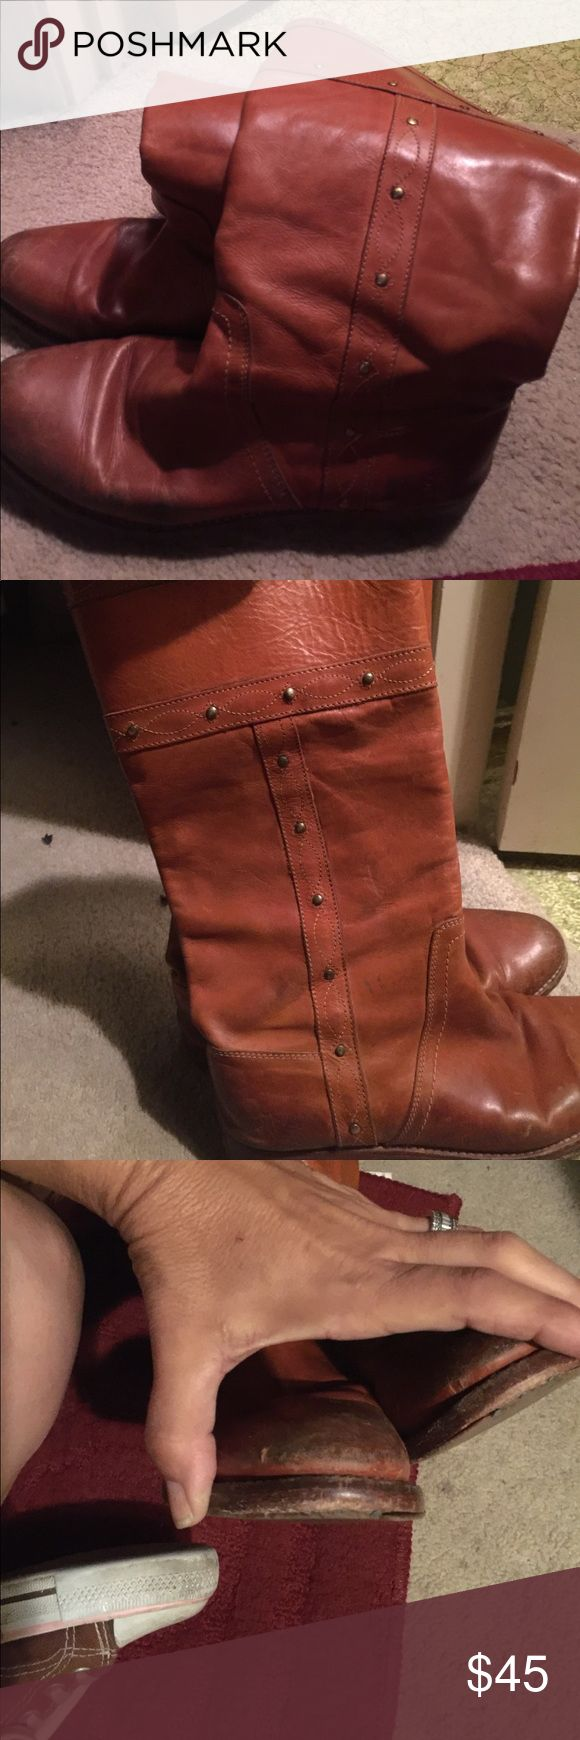 Sale price for 4th of July sale well loved vintage Frye riding boots...these are so cute!! Some worn places (as seen in pictures) but still have a lot of life!! Worn mainly in 90's. My calves are bigger now so they're tighter. My loss your gain Frye Shoes